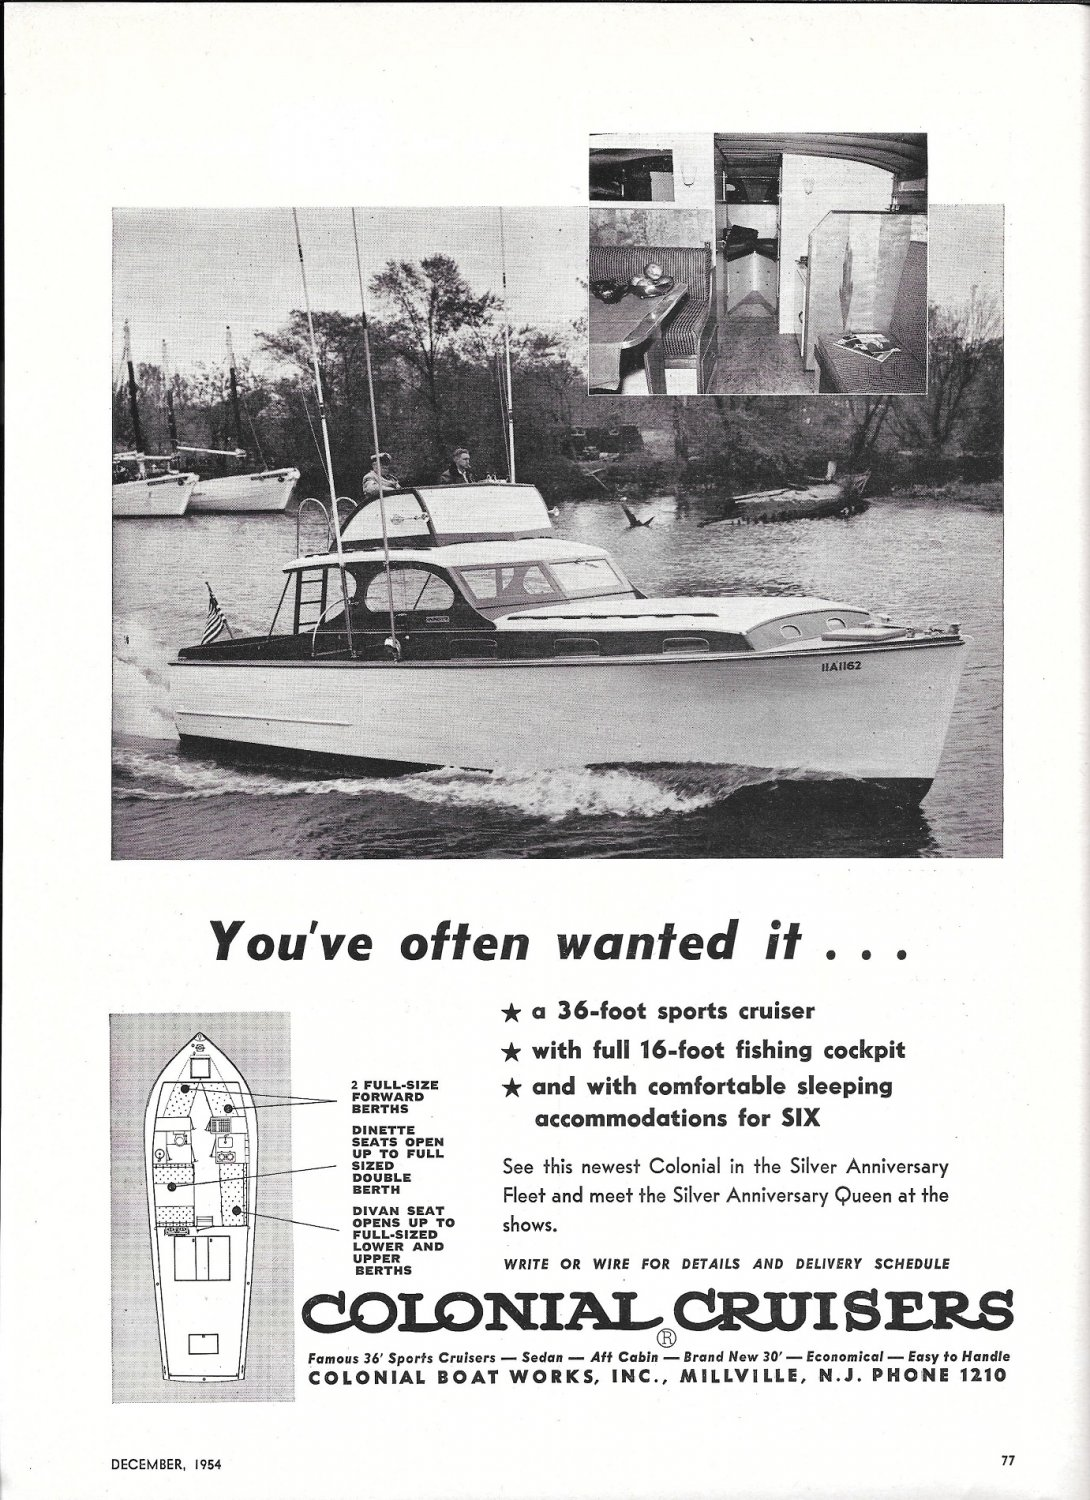 1955 Colonial Cruisers Ad- Nice Photo of 36' Sports Cruiser